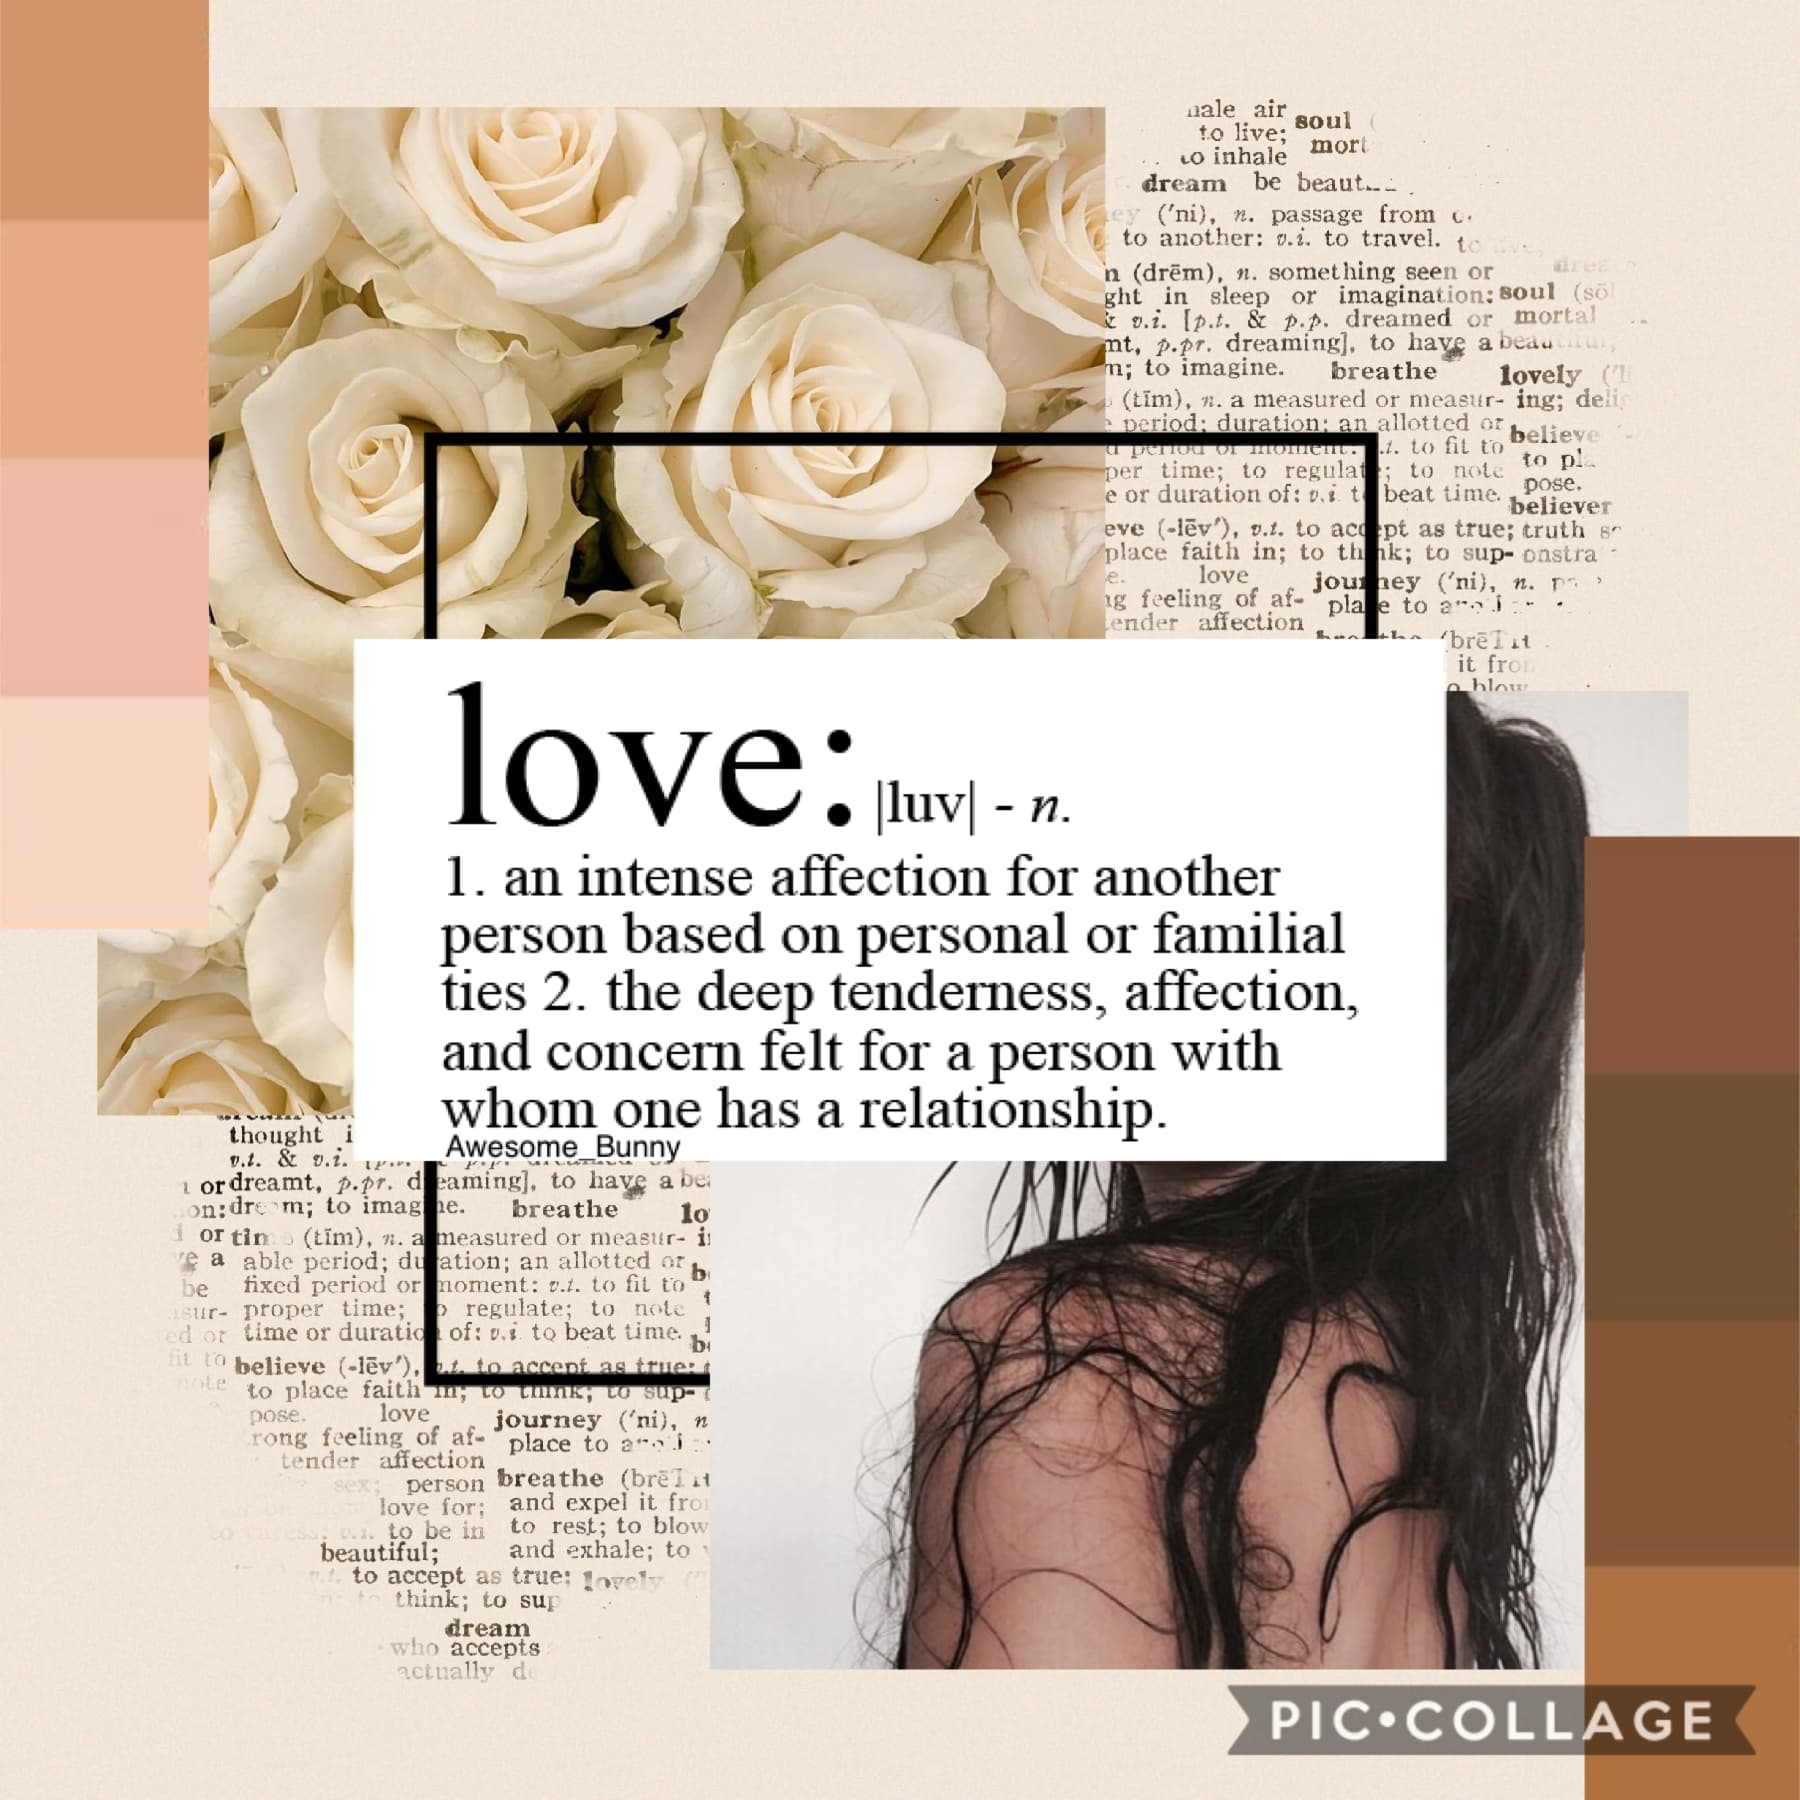 2/14/20 | What's your definition of love?